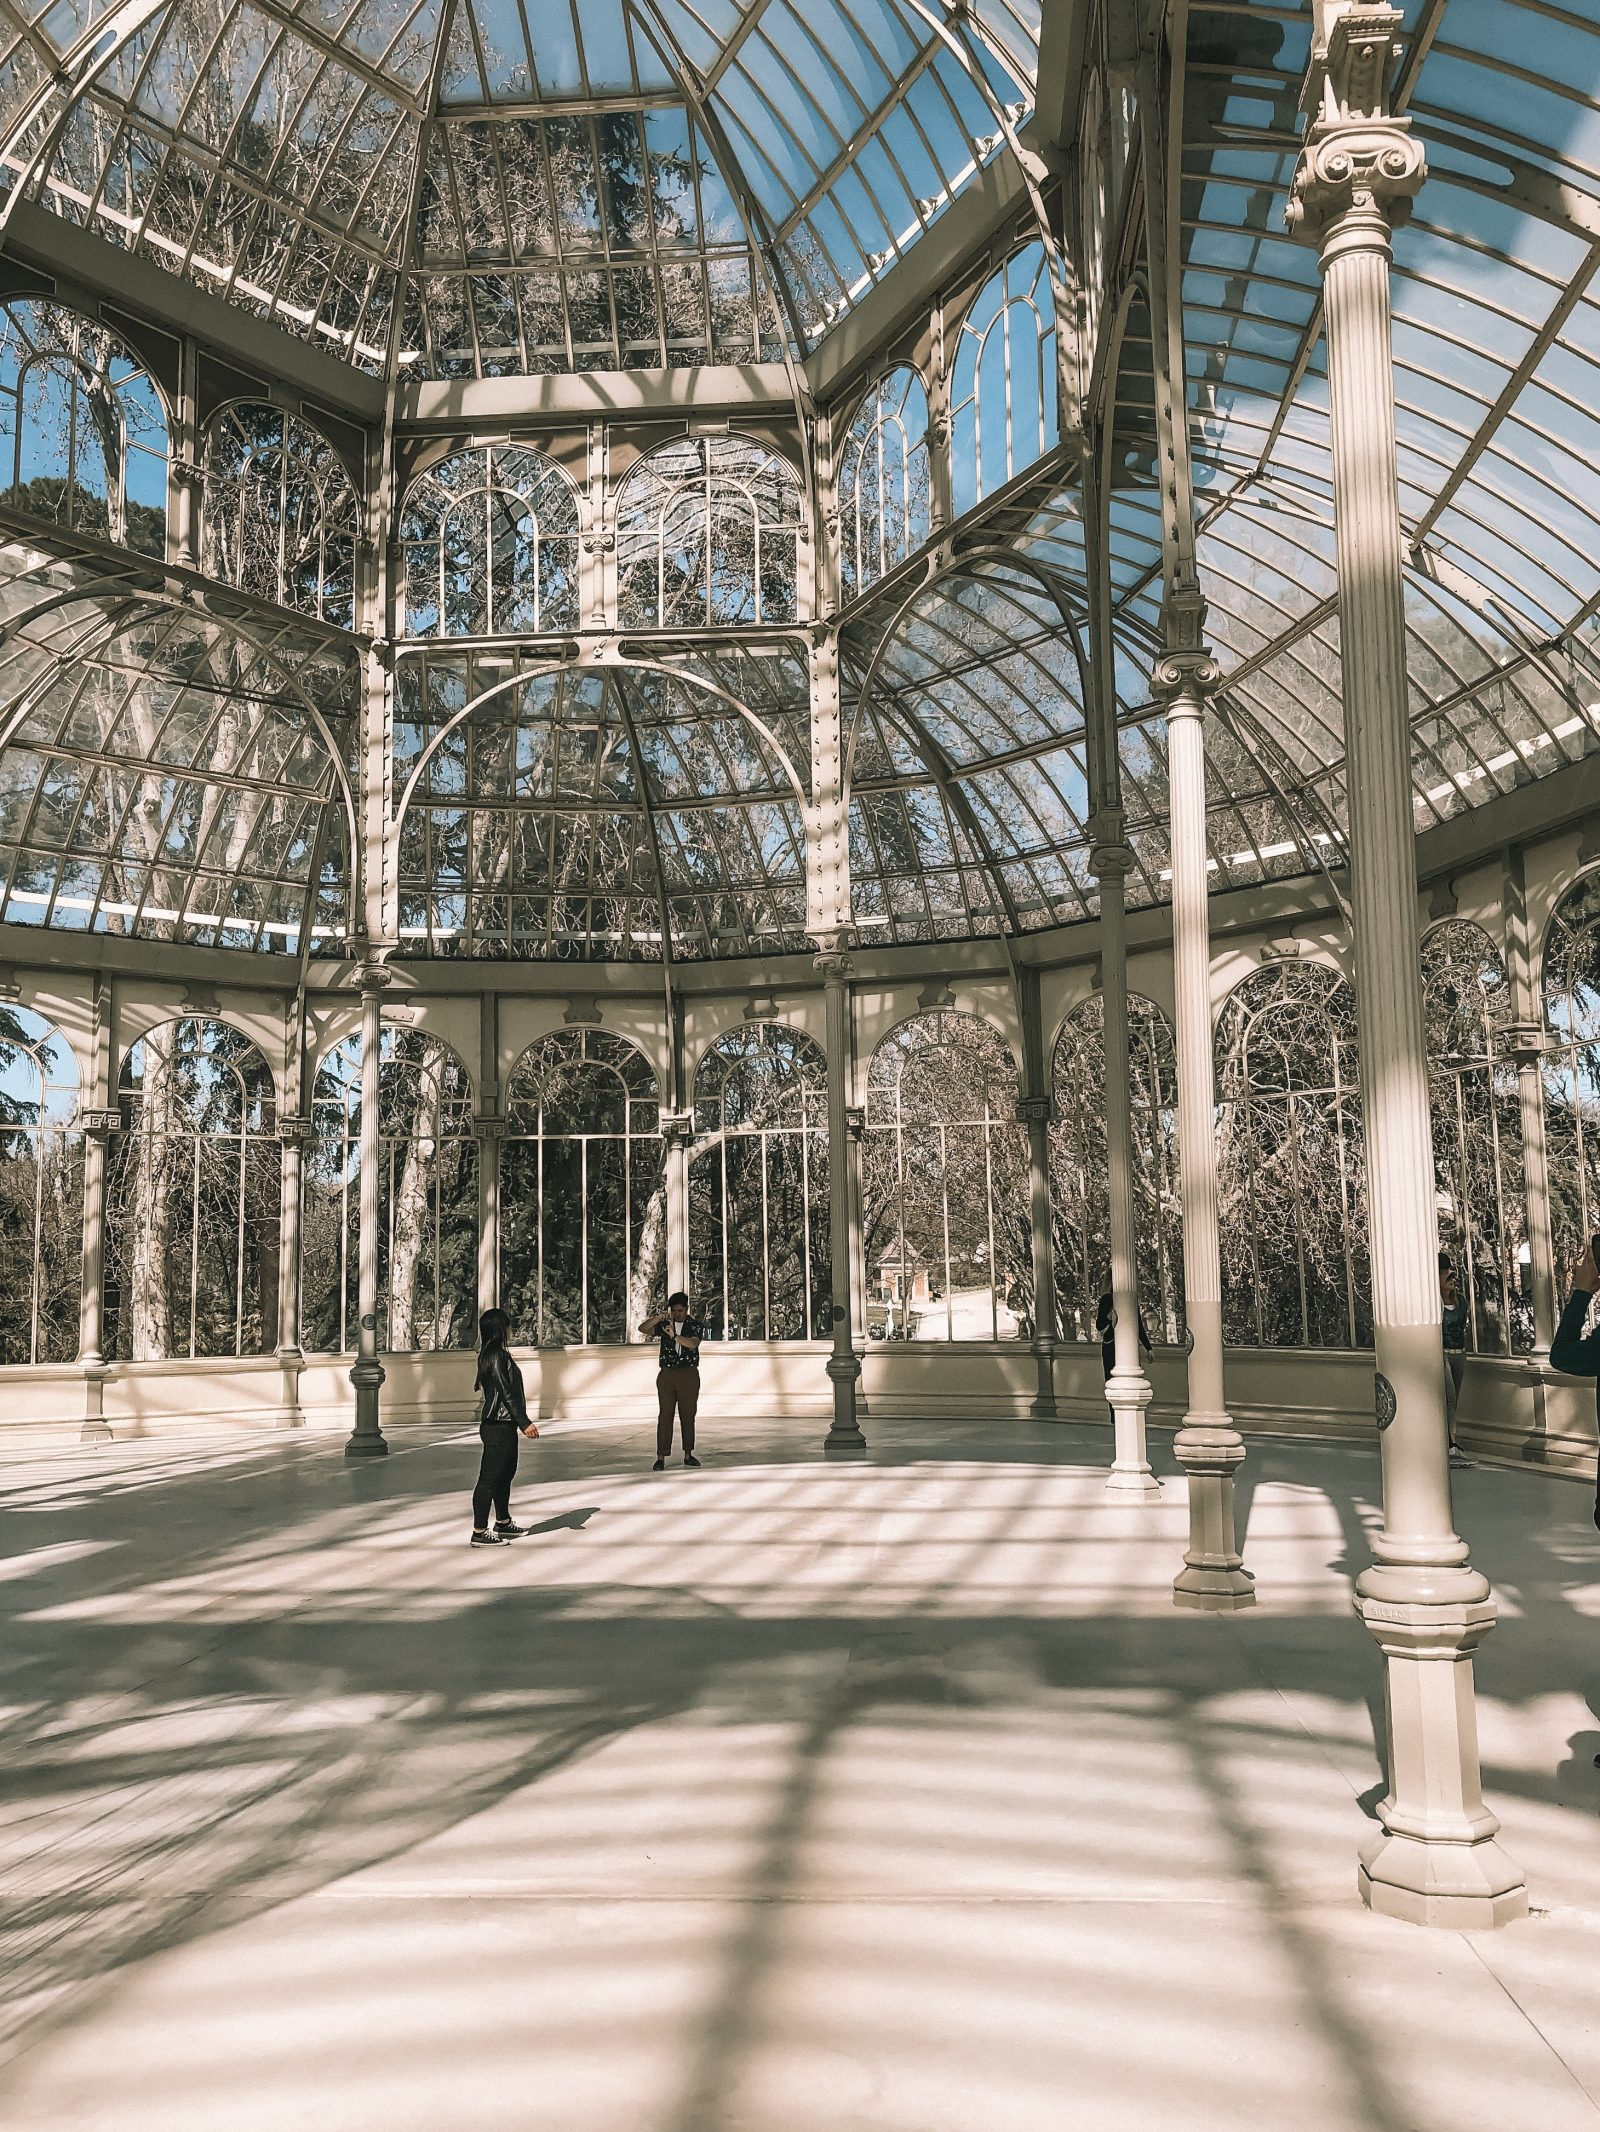 Madrid Travel Anxiety - Madrid Crystal Palace